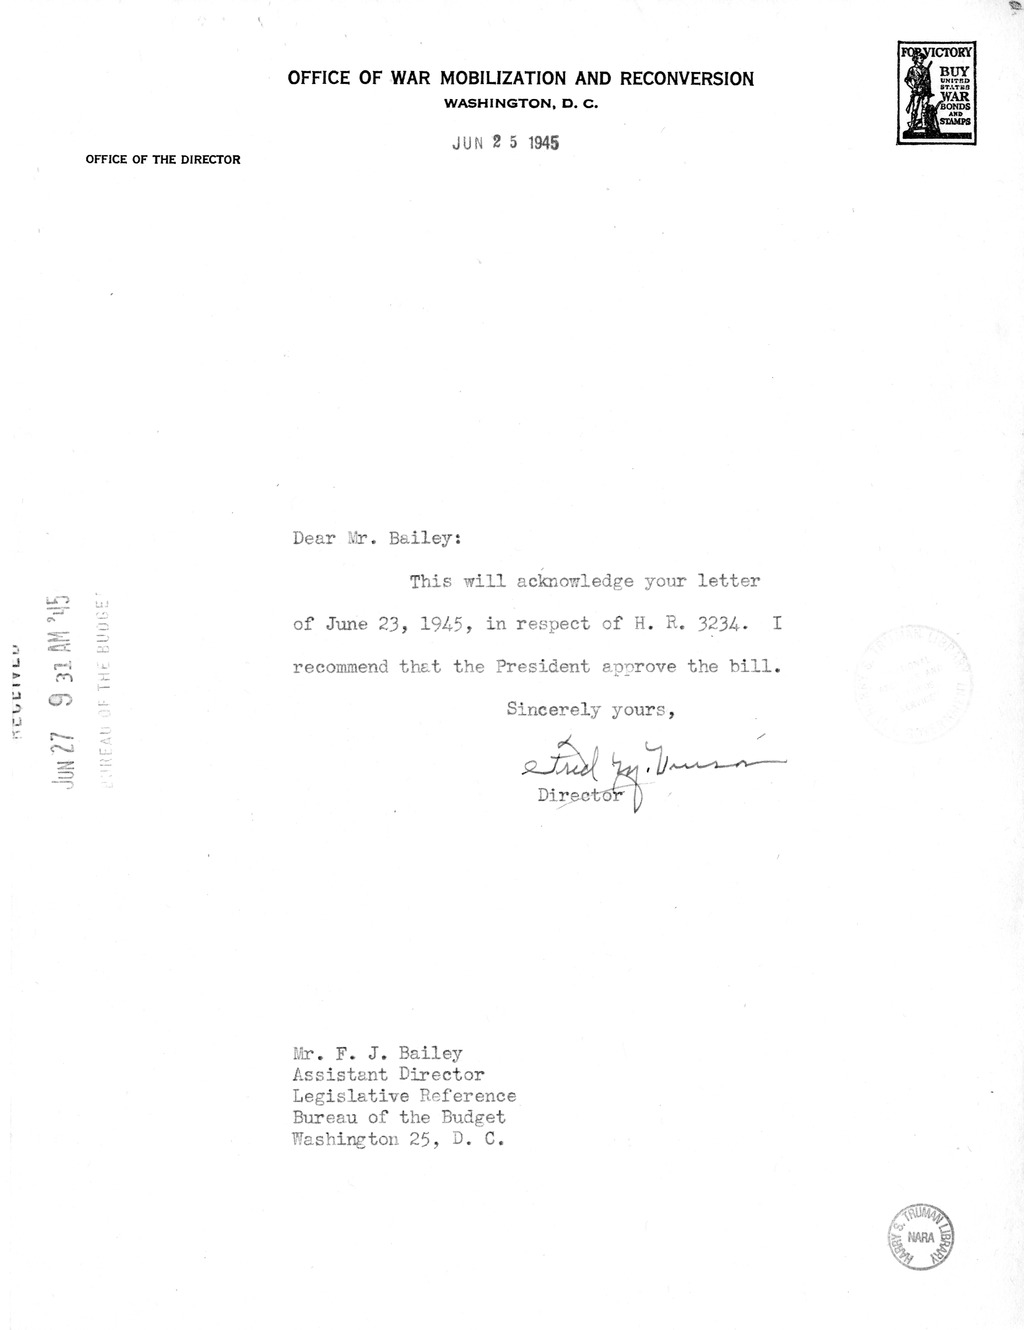 Memorandum from Harold D. Smith to M. C. Latta, H.R. 3234, To Amend An Act to Authorize the President of the United States to Requisition Property Required for the Defense of the United States', Approved October 16, 1941, as Amended, for the Purpose of Co